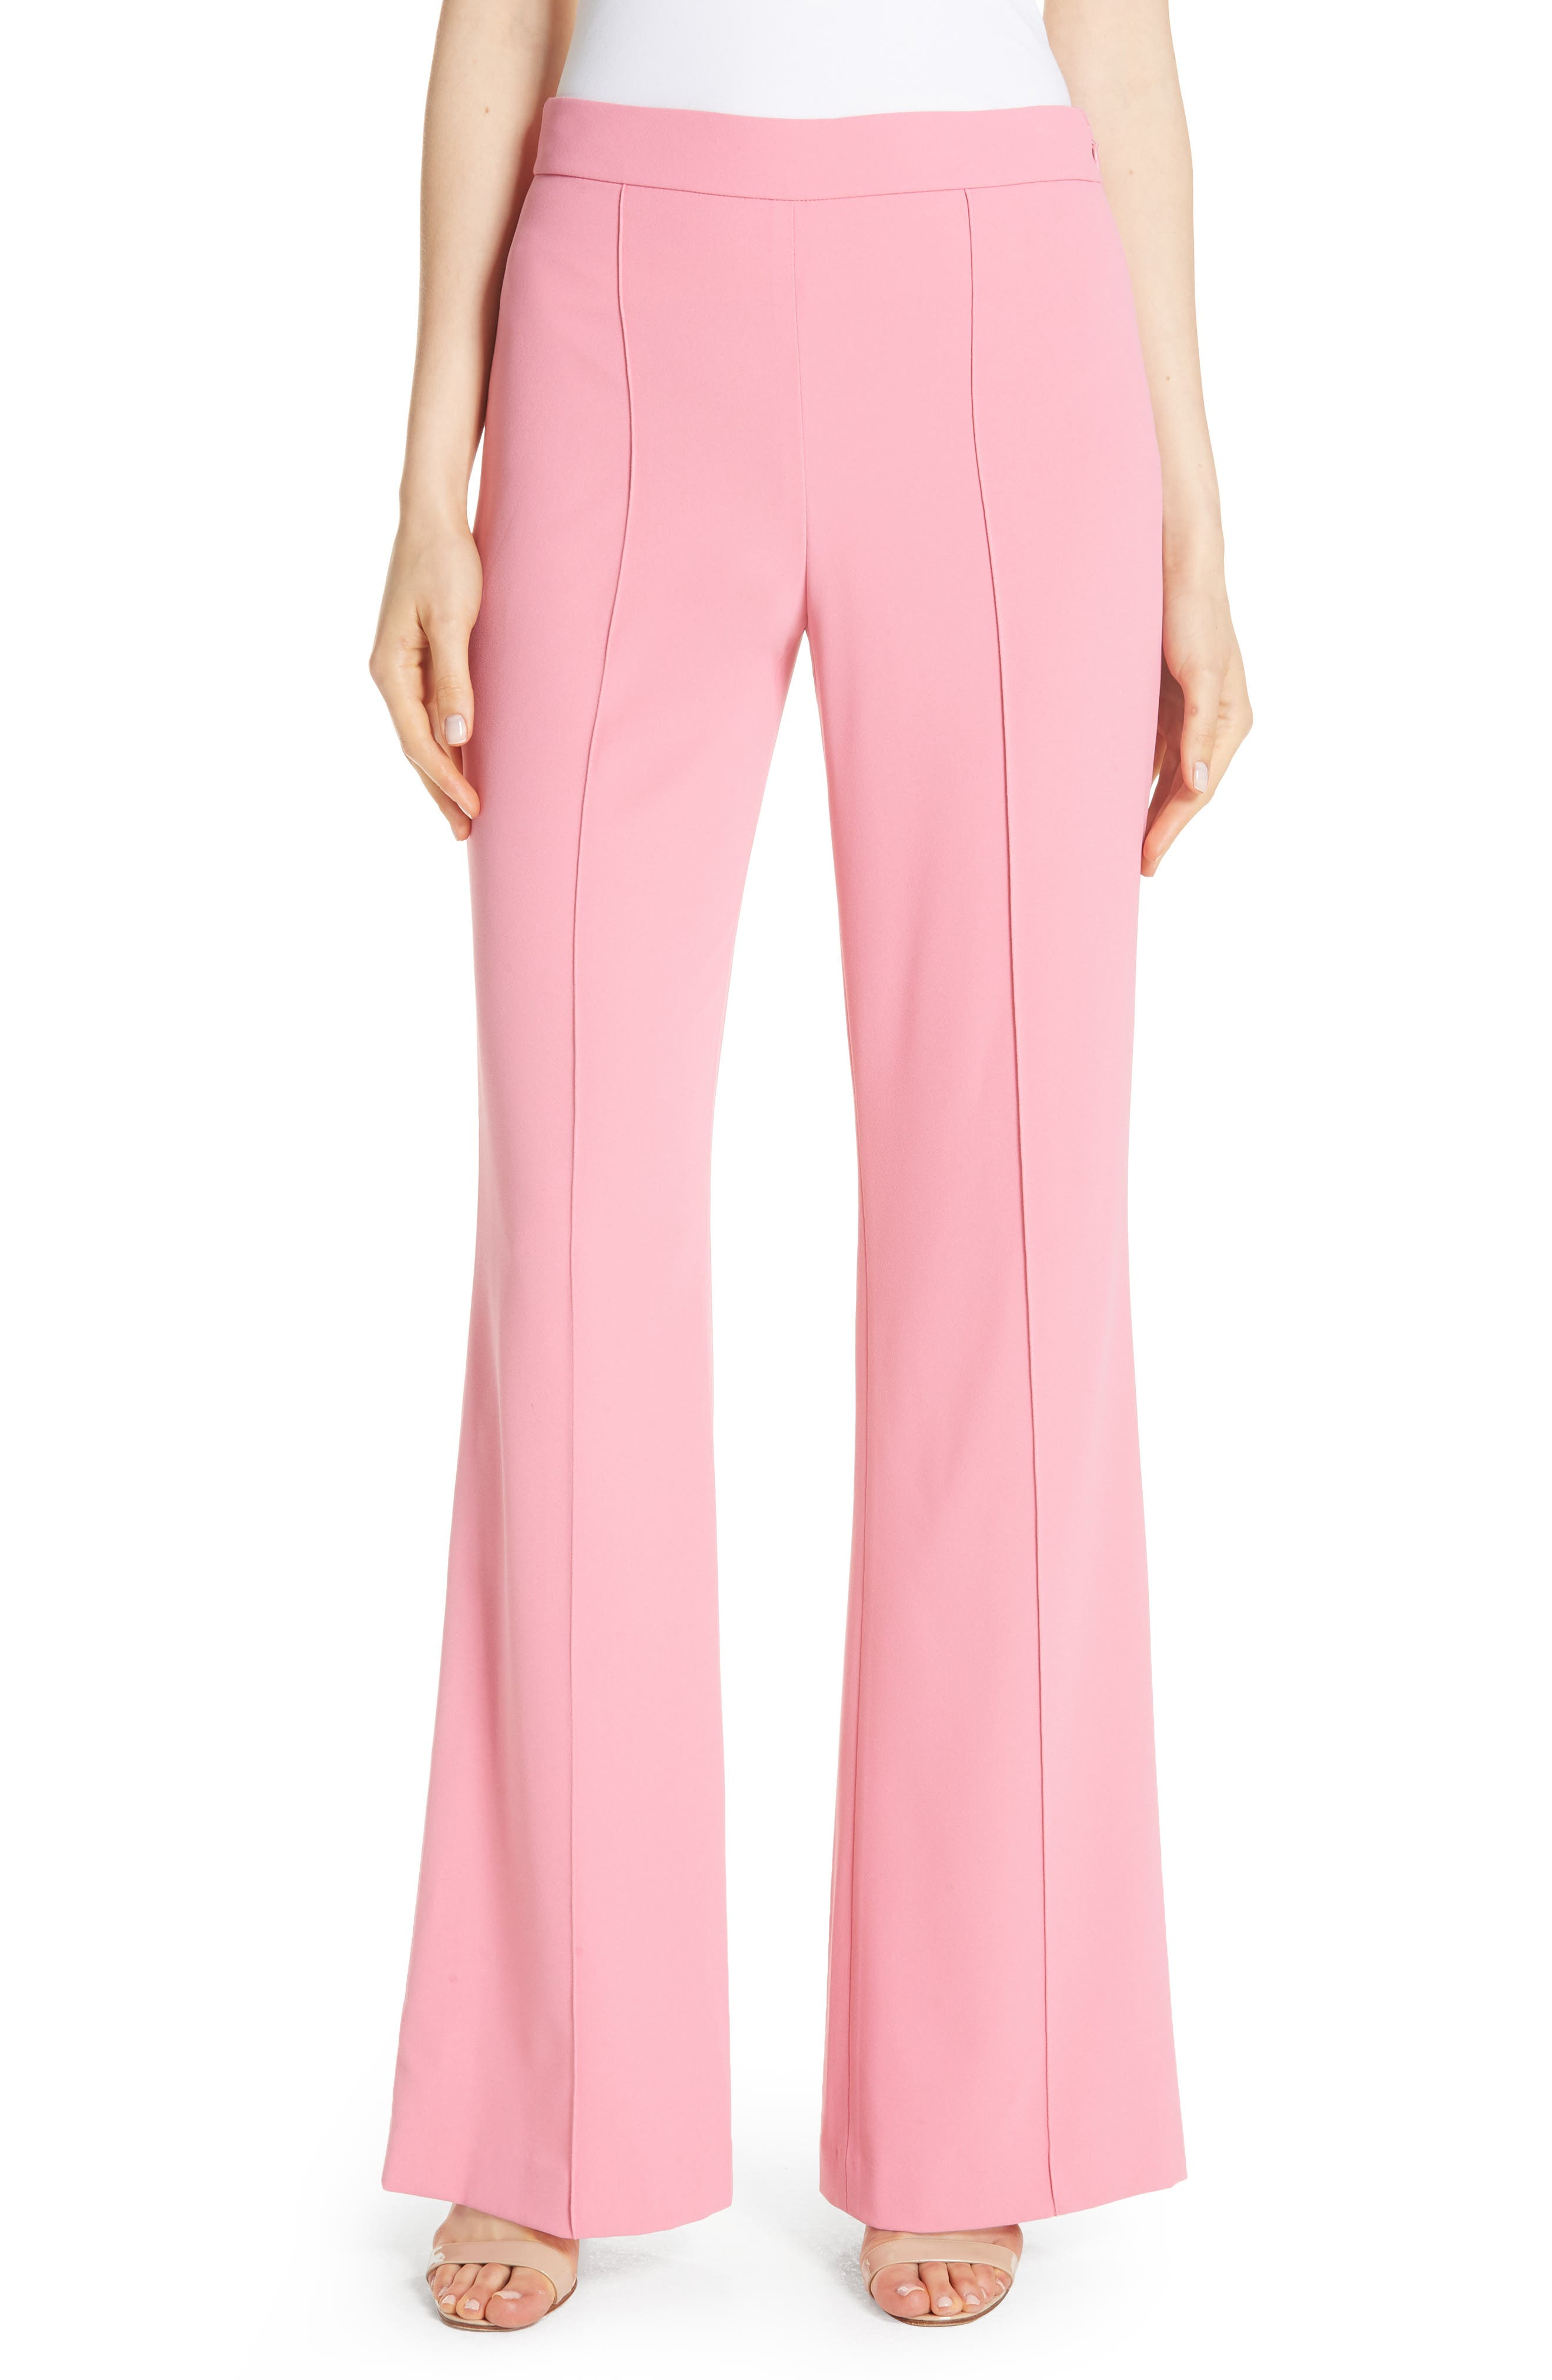 Jalisa High Waist Flare Pants,                             Main thumbnail 1, color,                             650